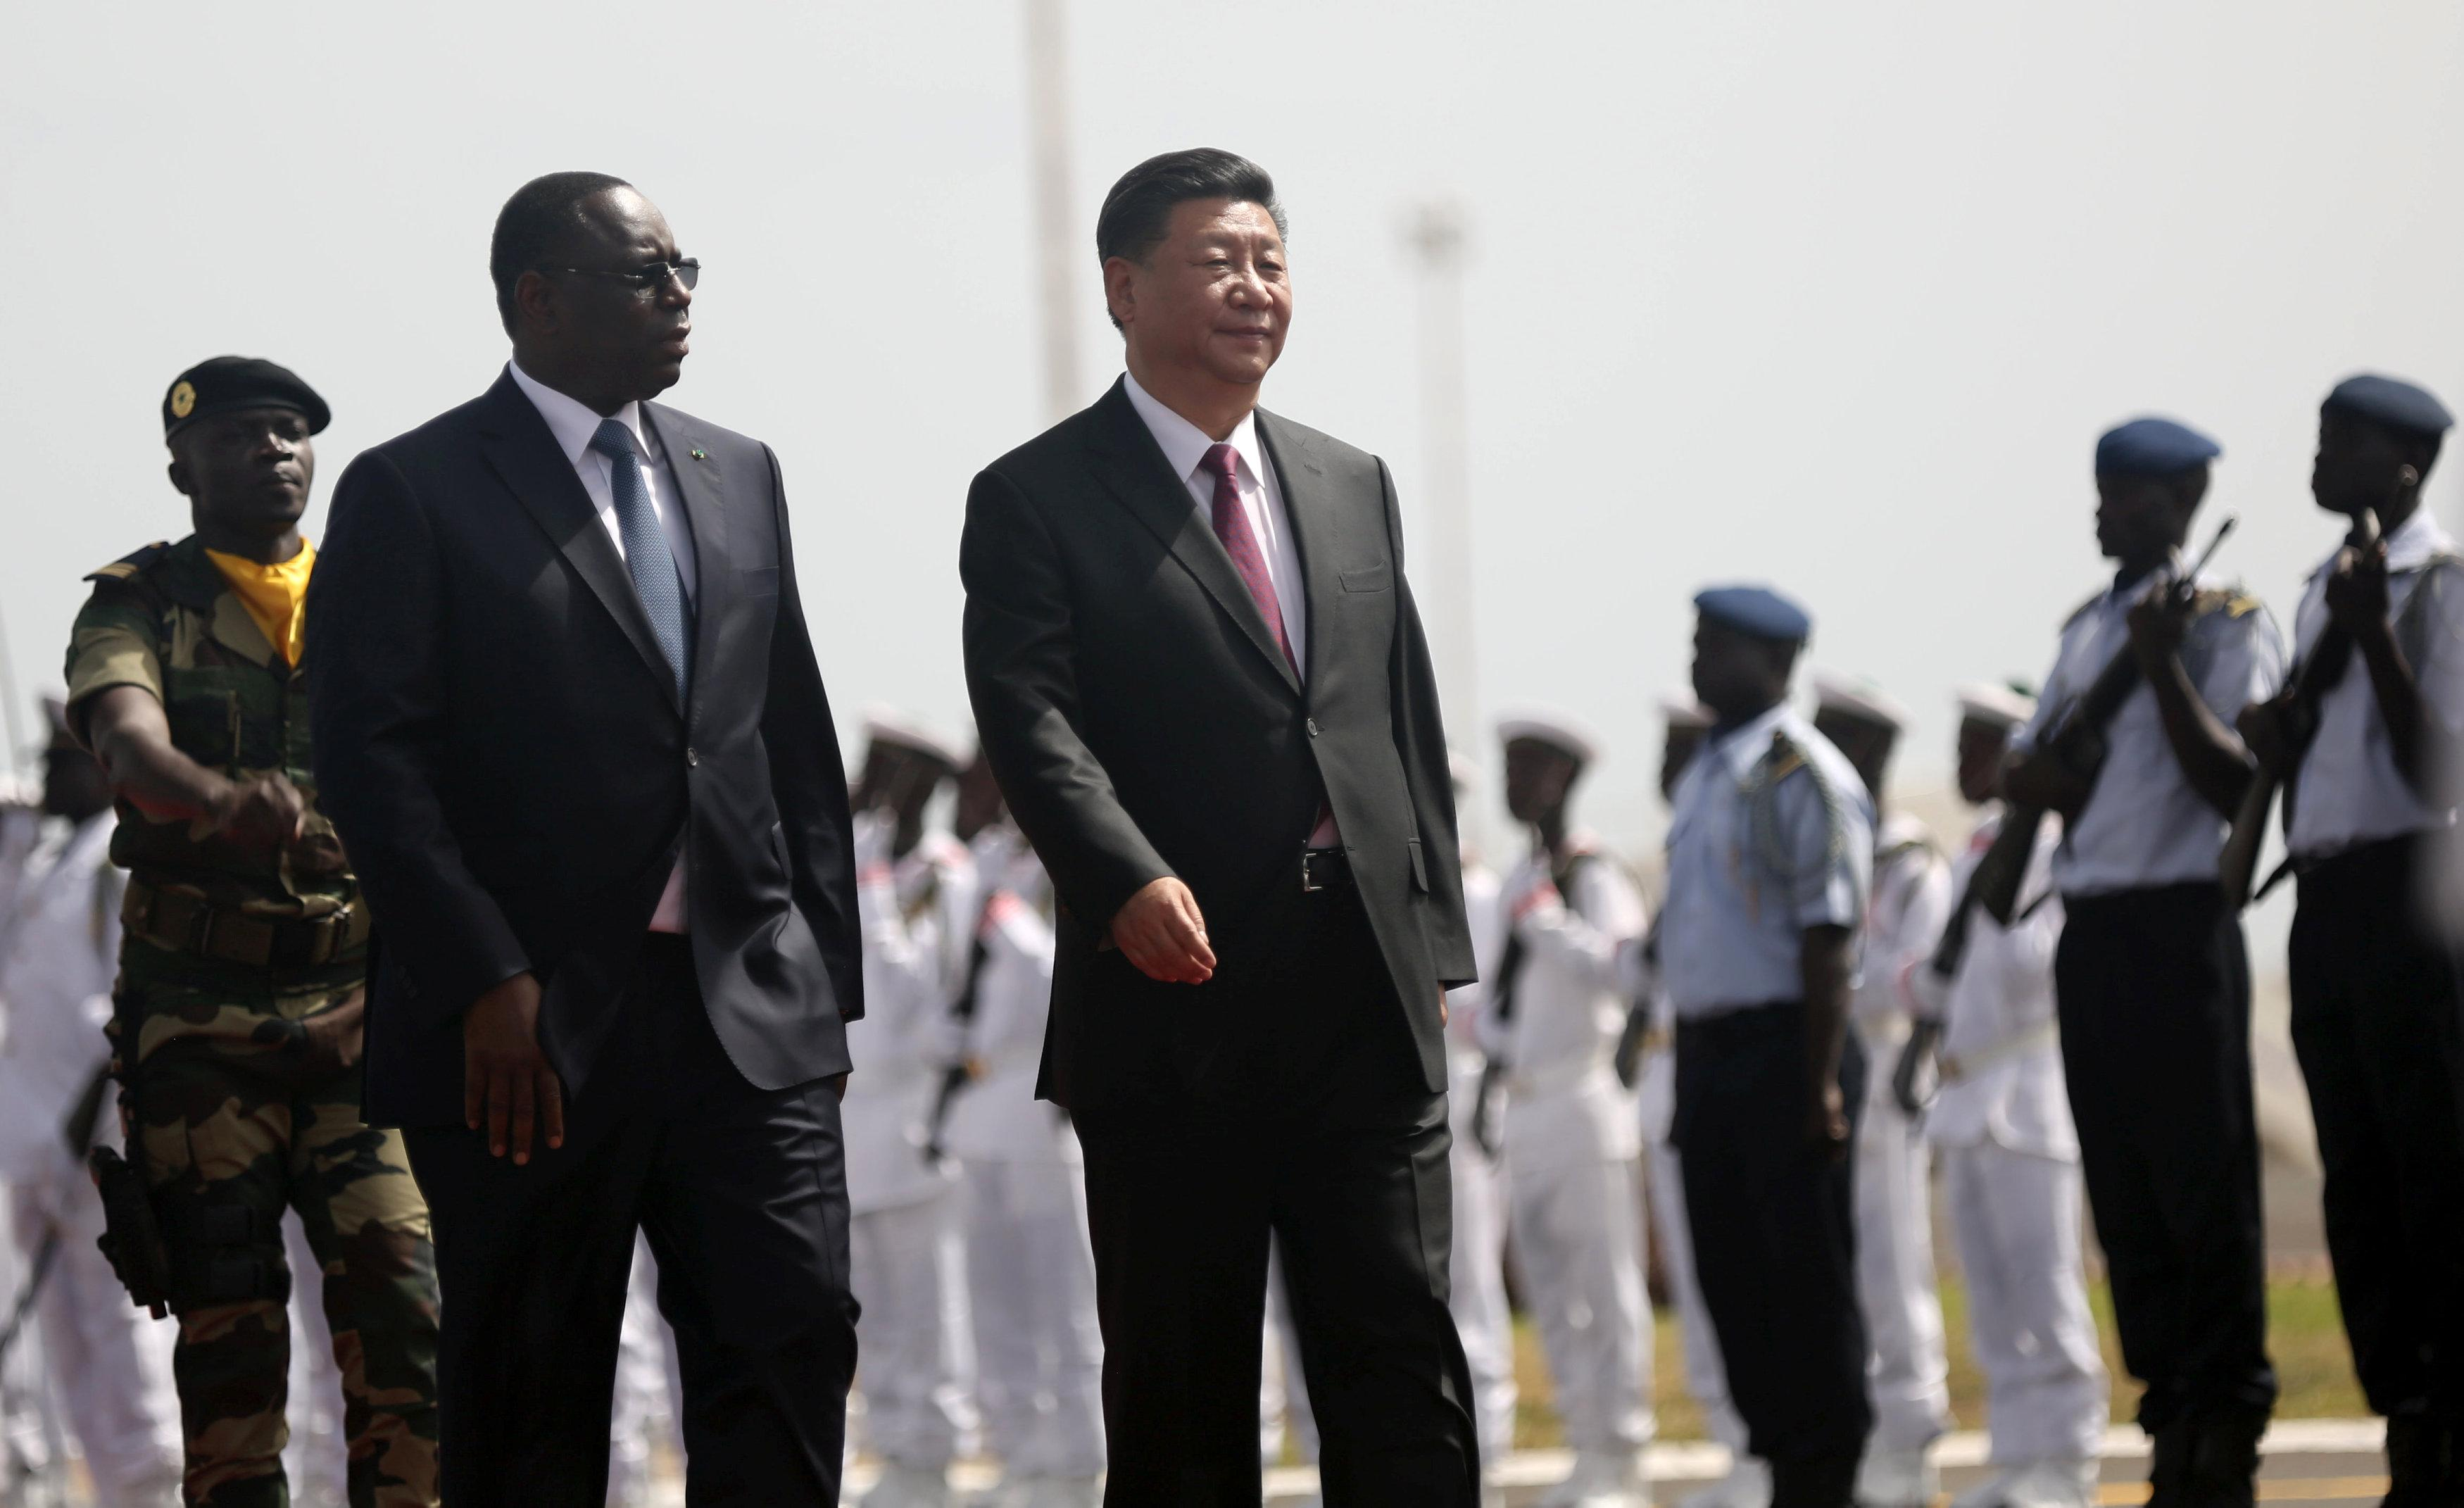 Chinese President Xi Jinping walks with Senegal's President Macky Sall after arriving at the Leopold Sedar Senghor International Airport, at the start of his visit to Dakar, Senegal July 21, 2018. Mikal McAllister